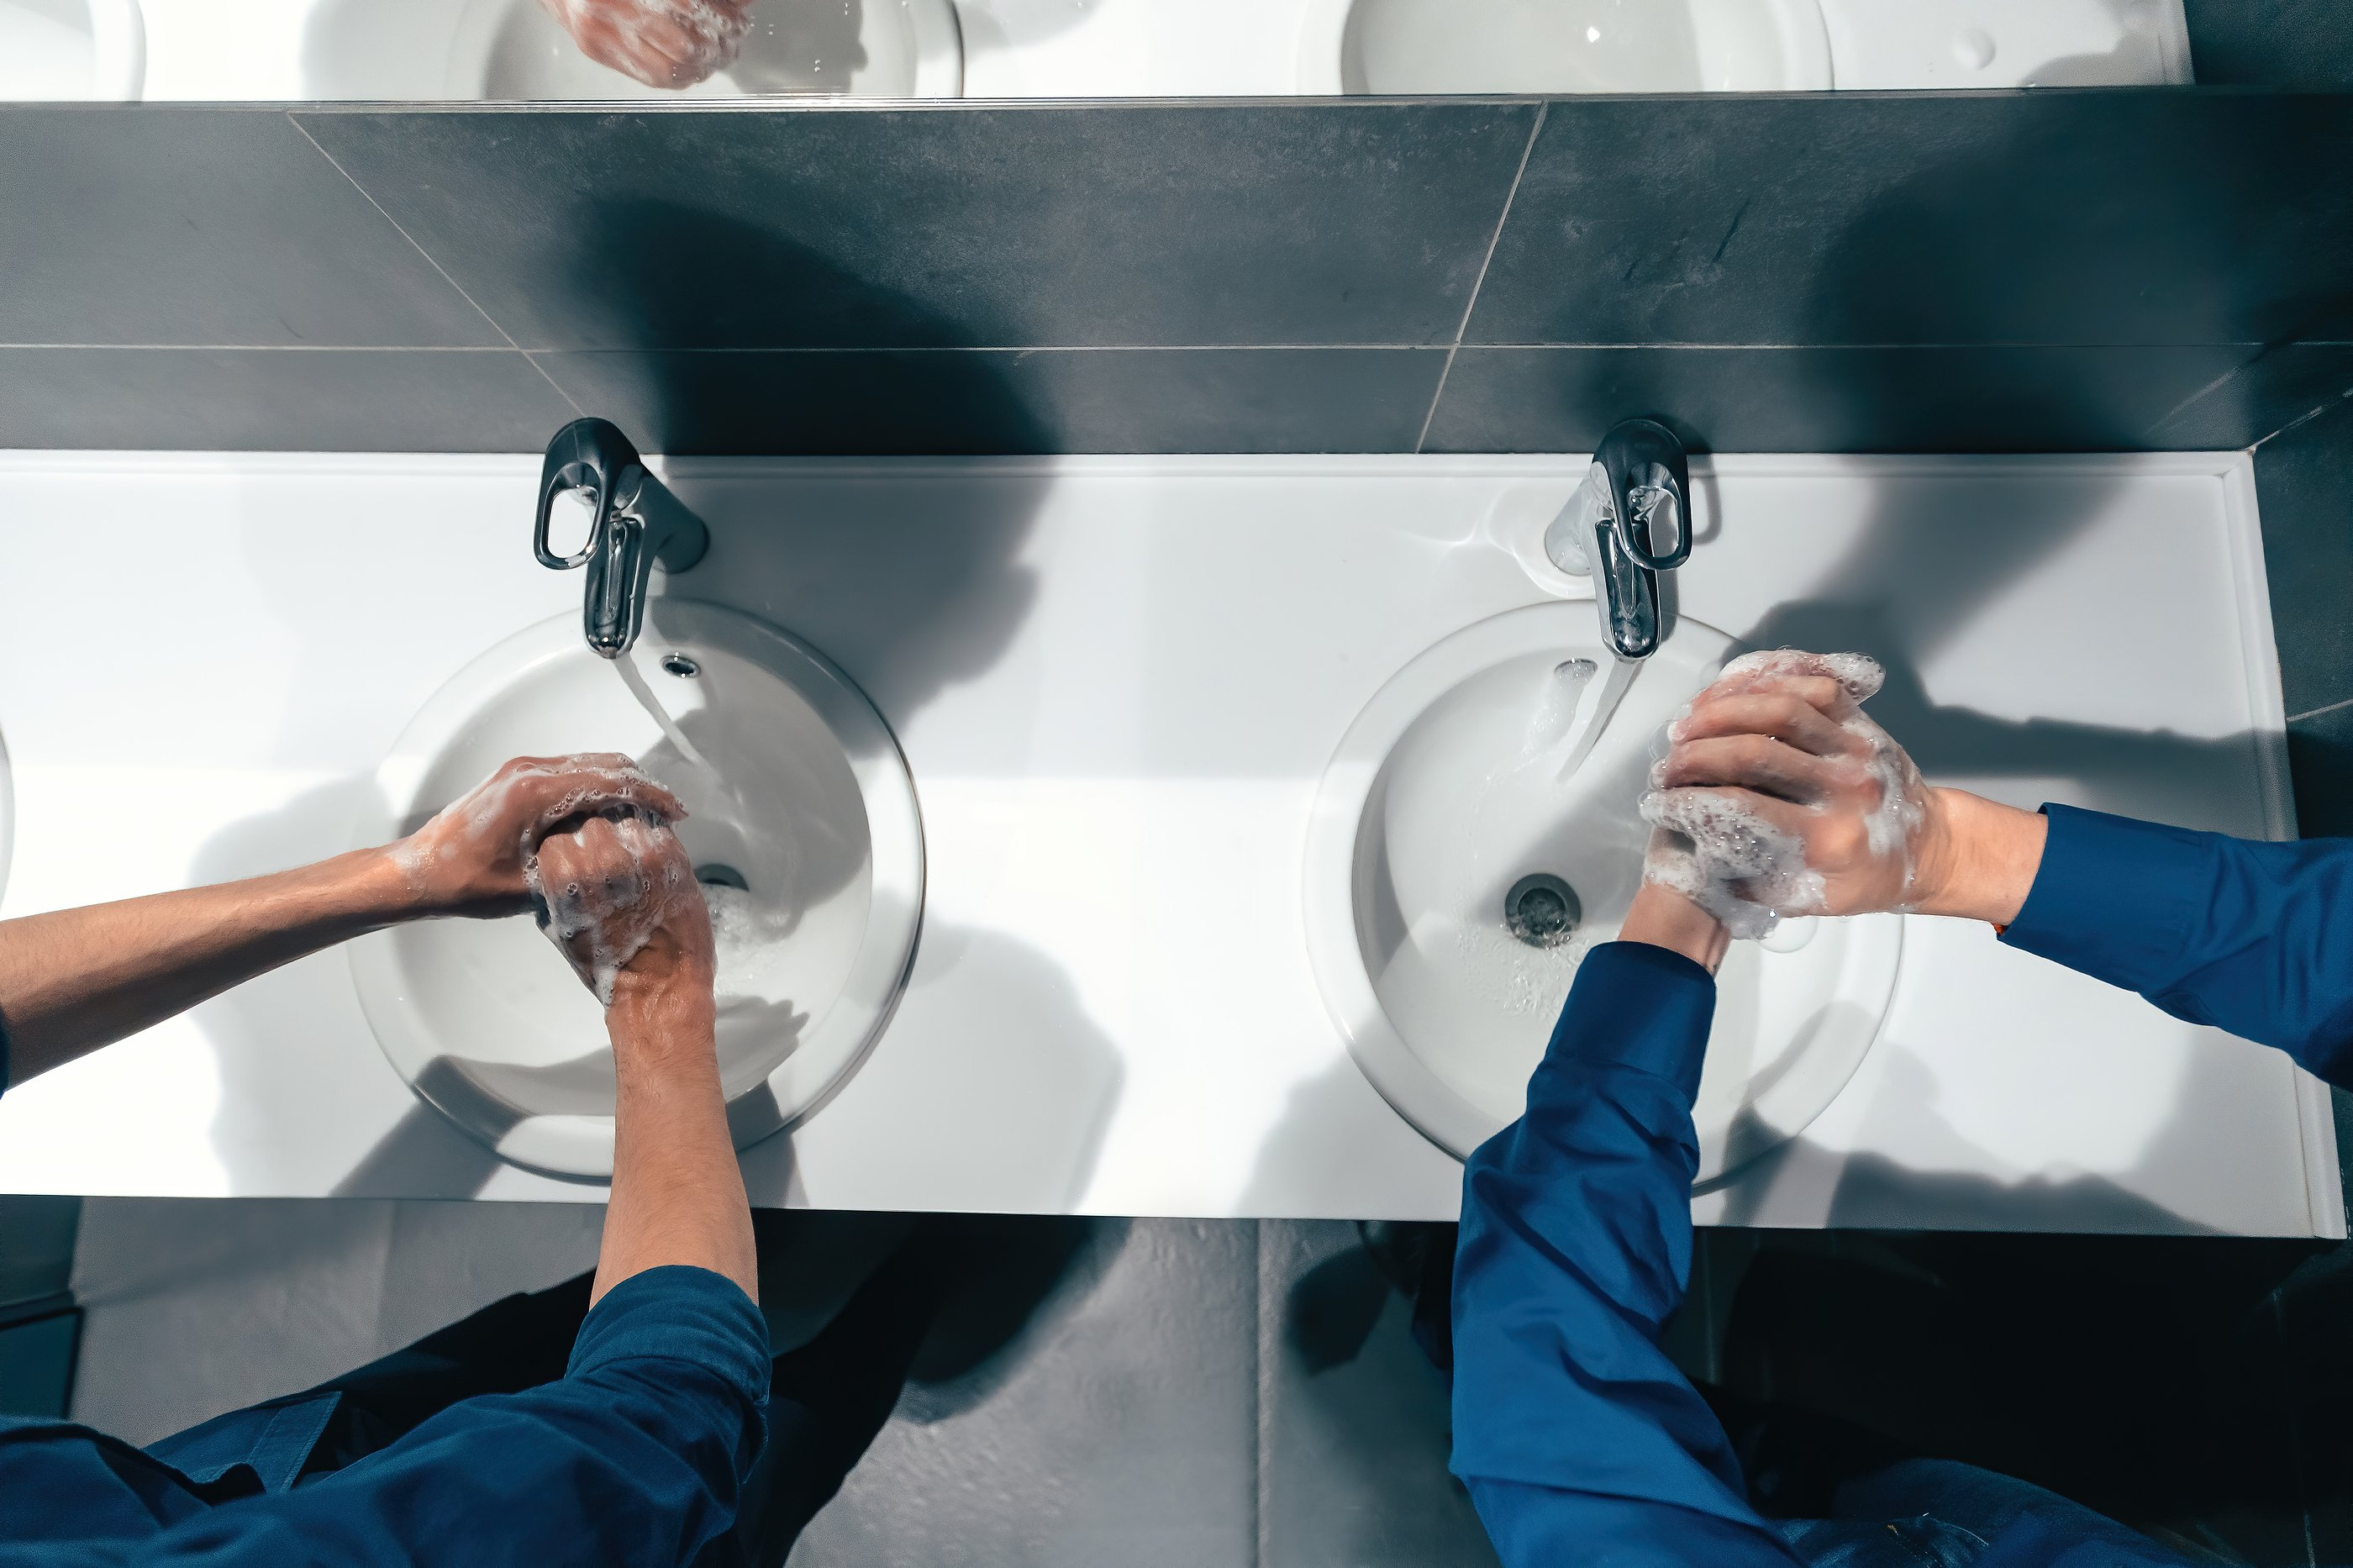 restroom disinfection, restroom cleaning